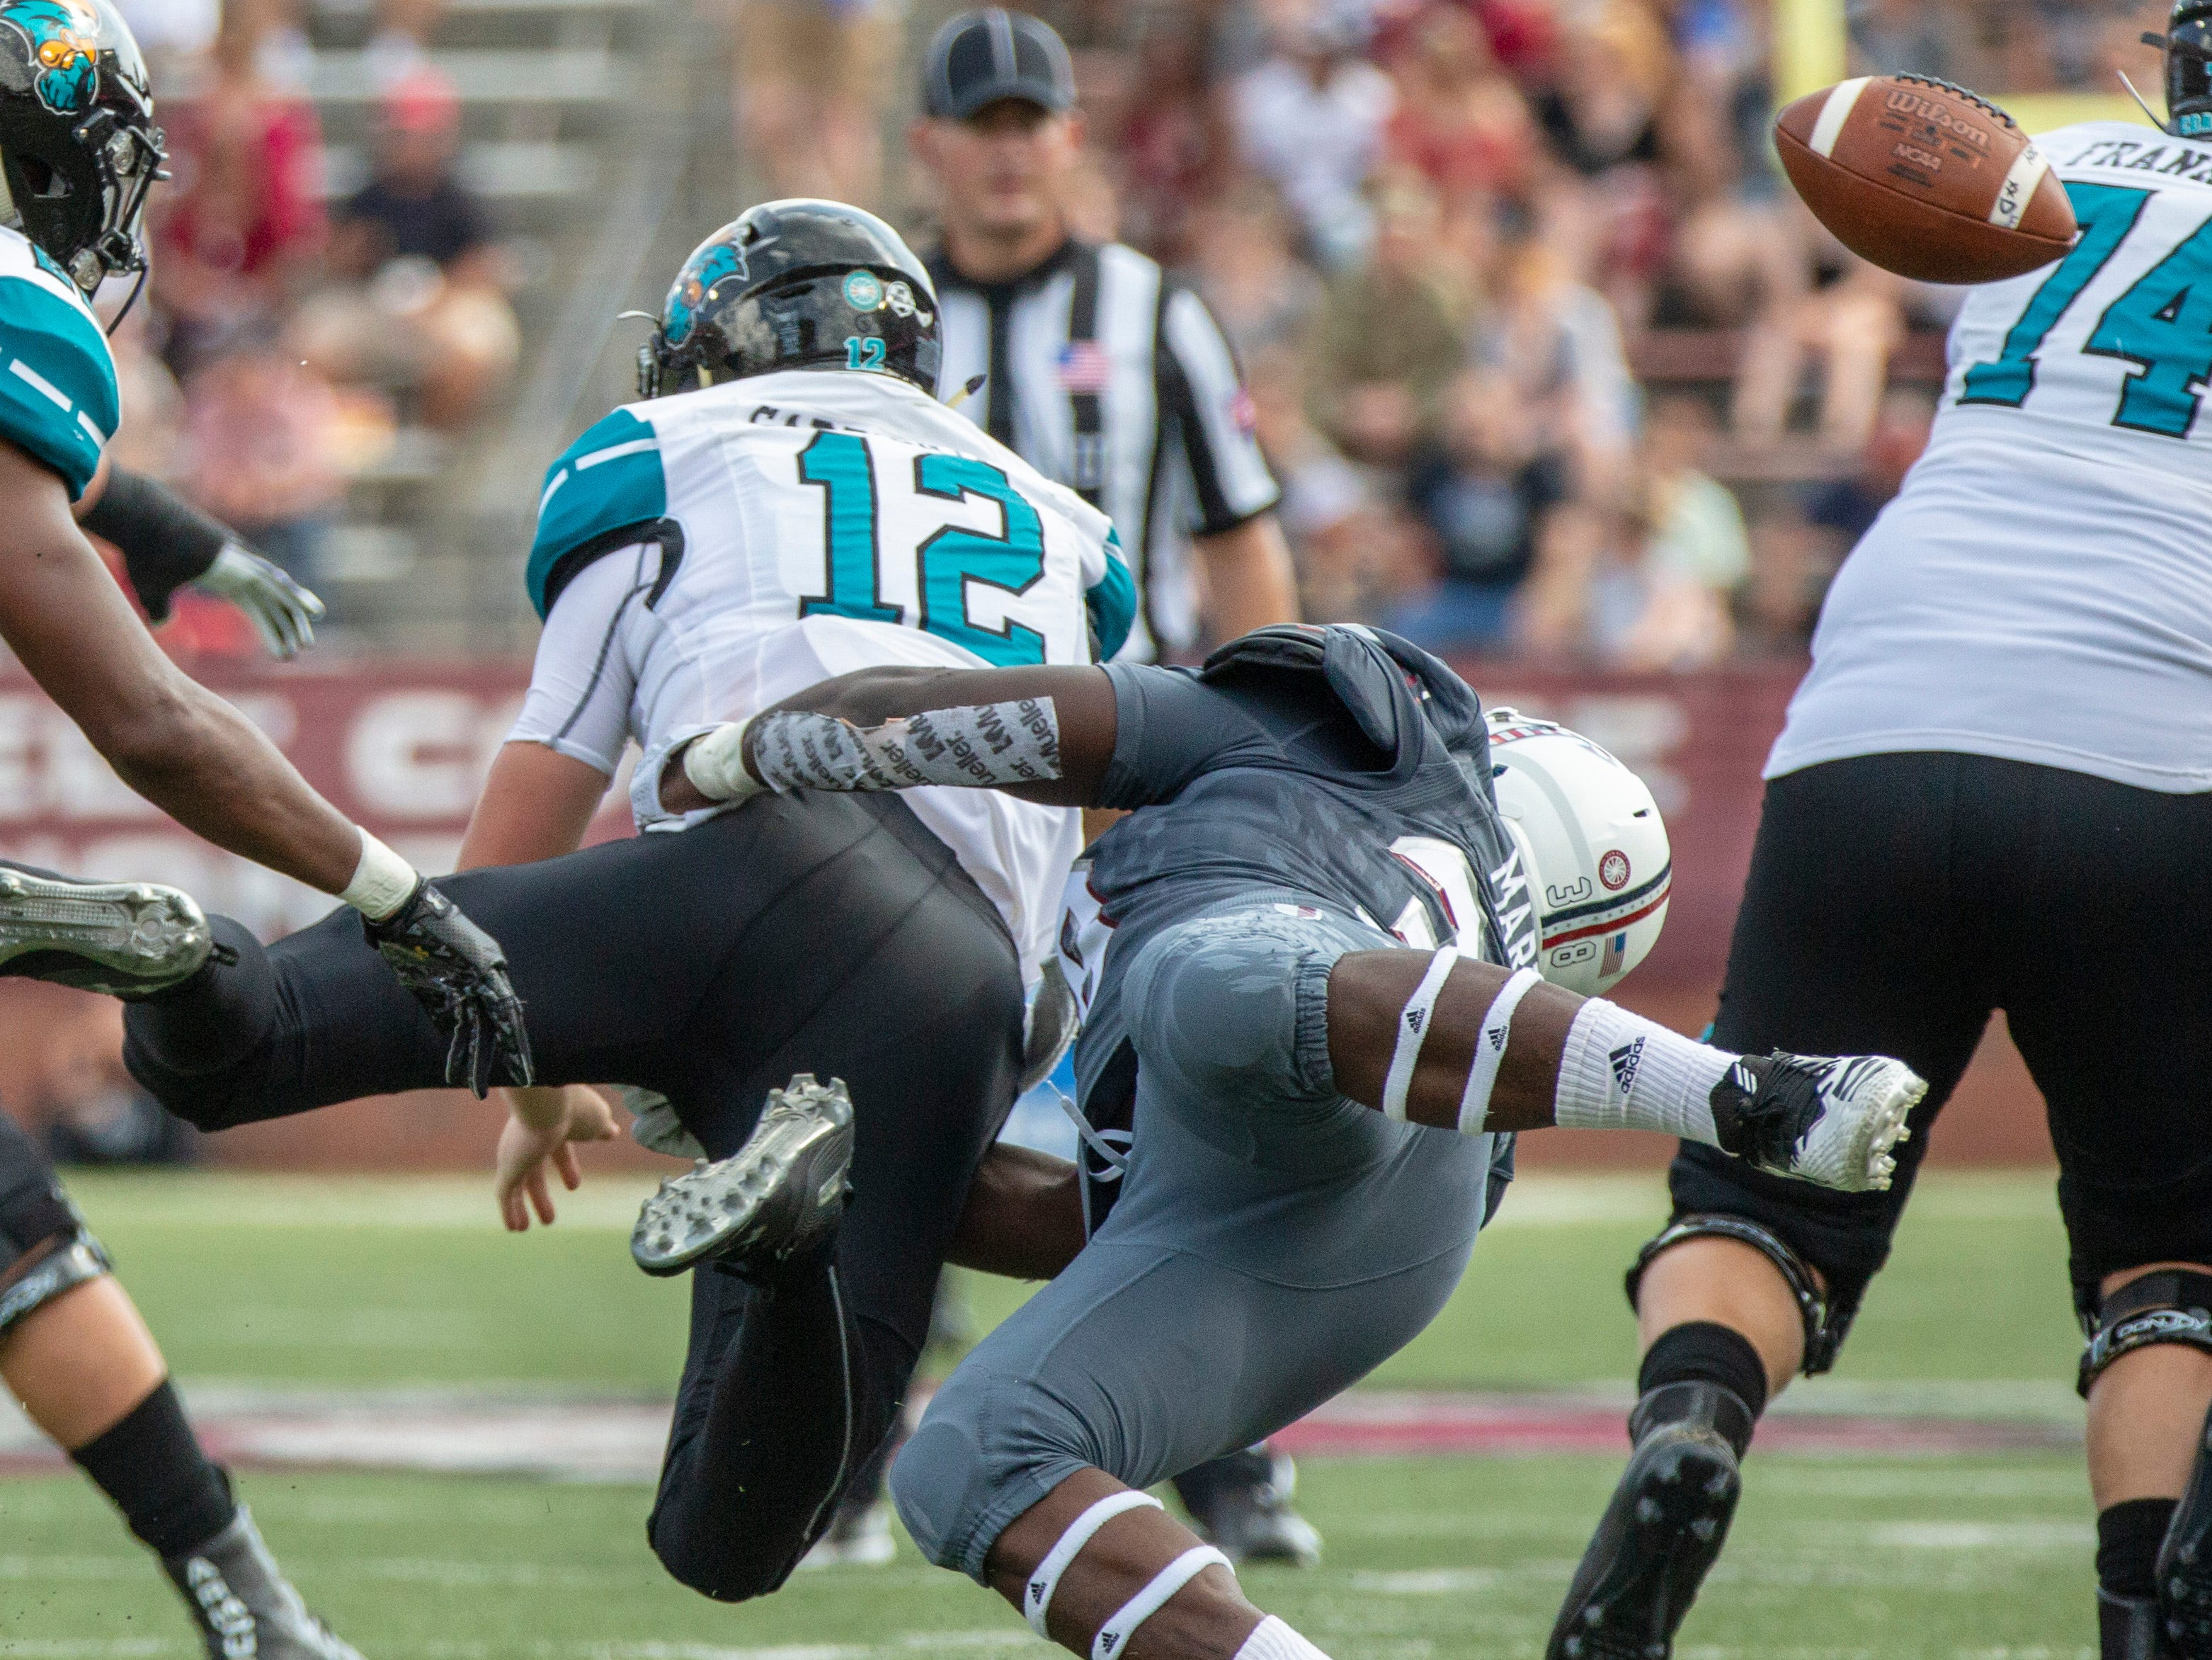 Troy's Jeremiah Jones sneaks up on an unsuspecting Bryce Carpenter for causing a fumble.